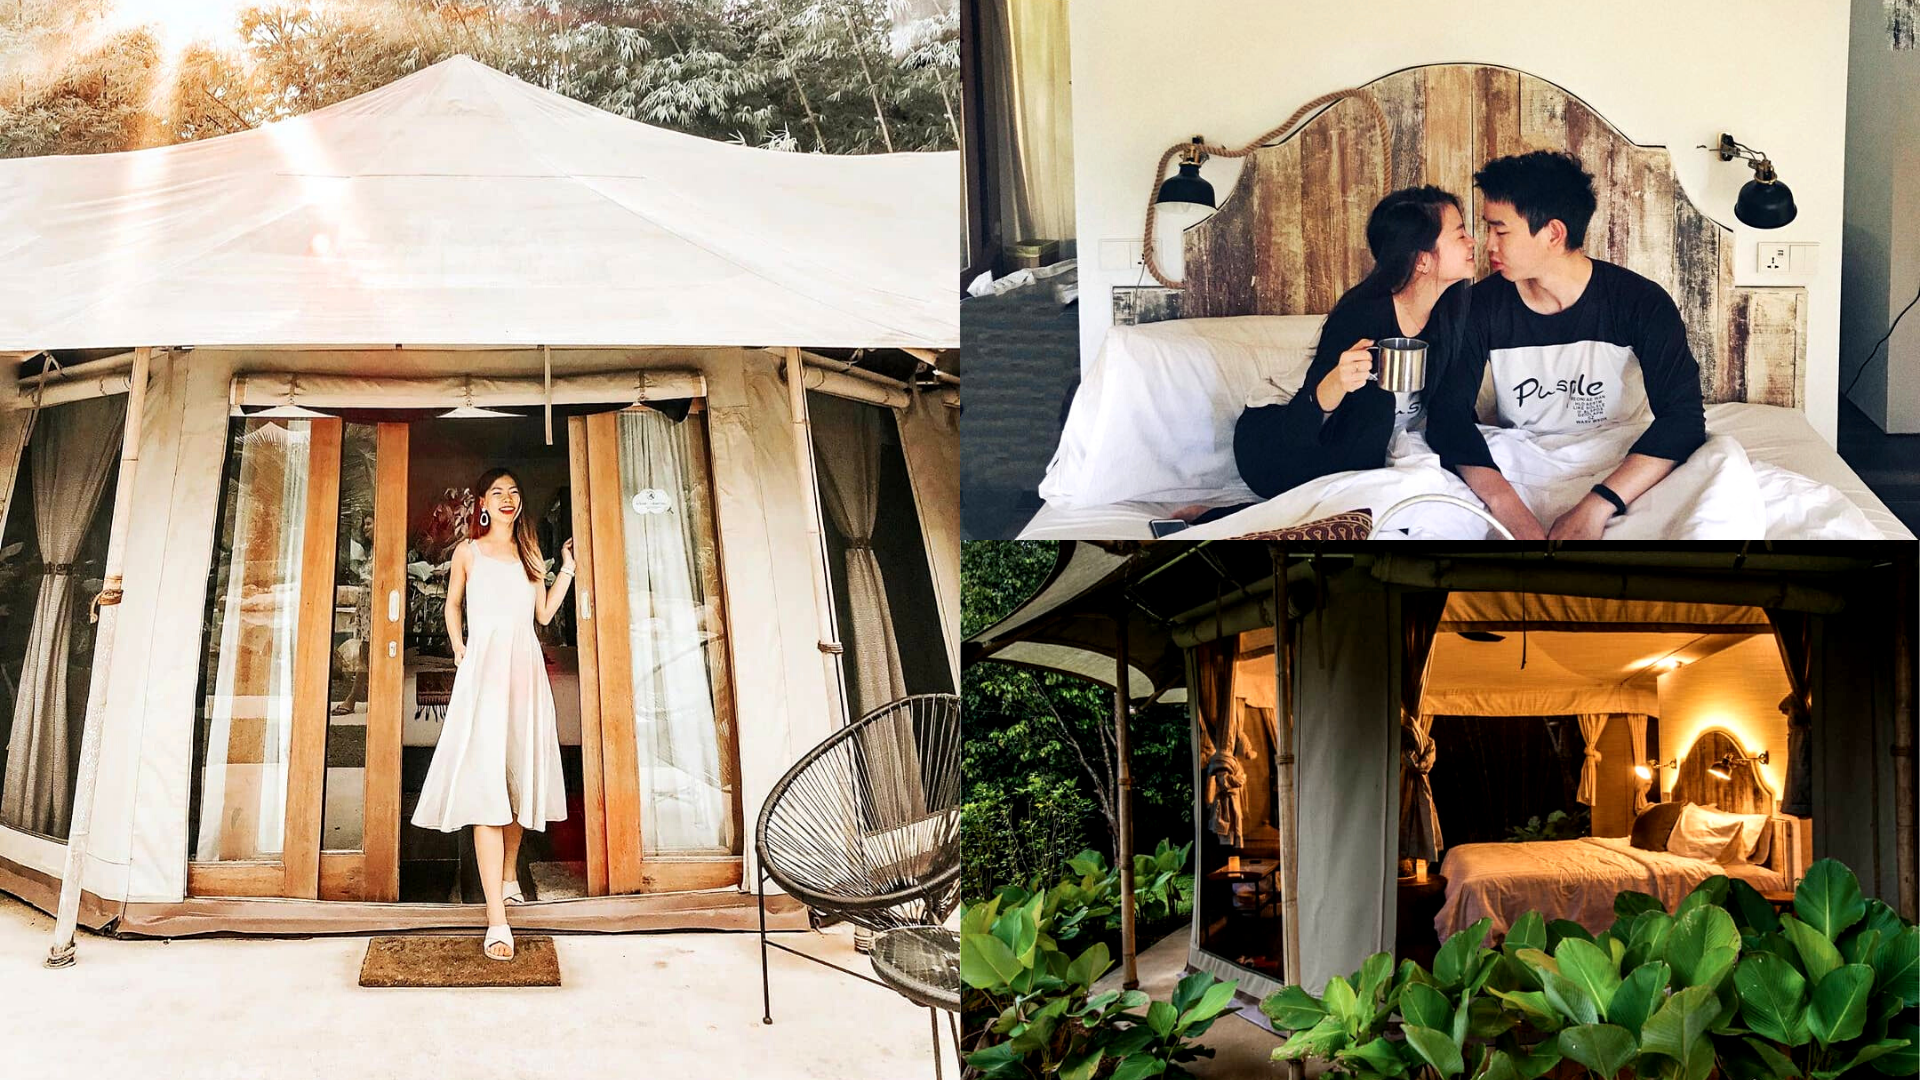 Tiarasa Escapes: This Dreamy Glamping Site In Janda Baik Has Safari-Style Tents And Rooftop Villas